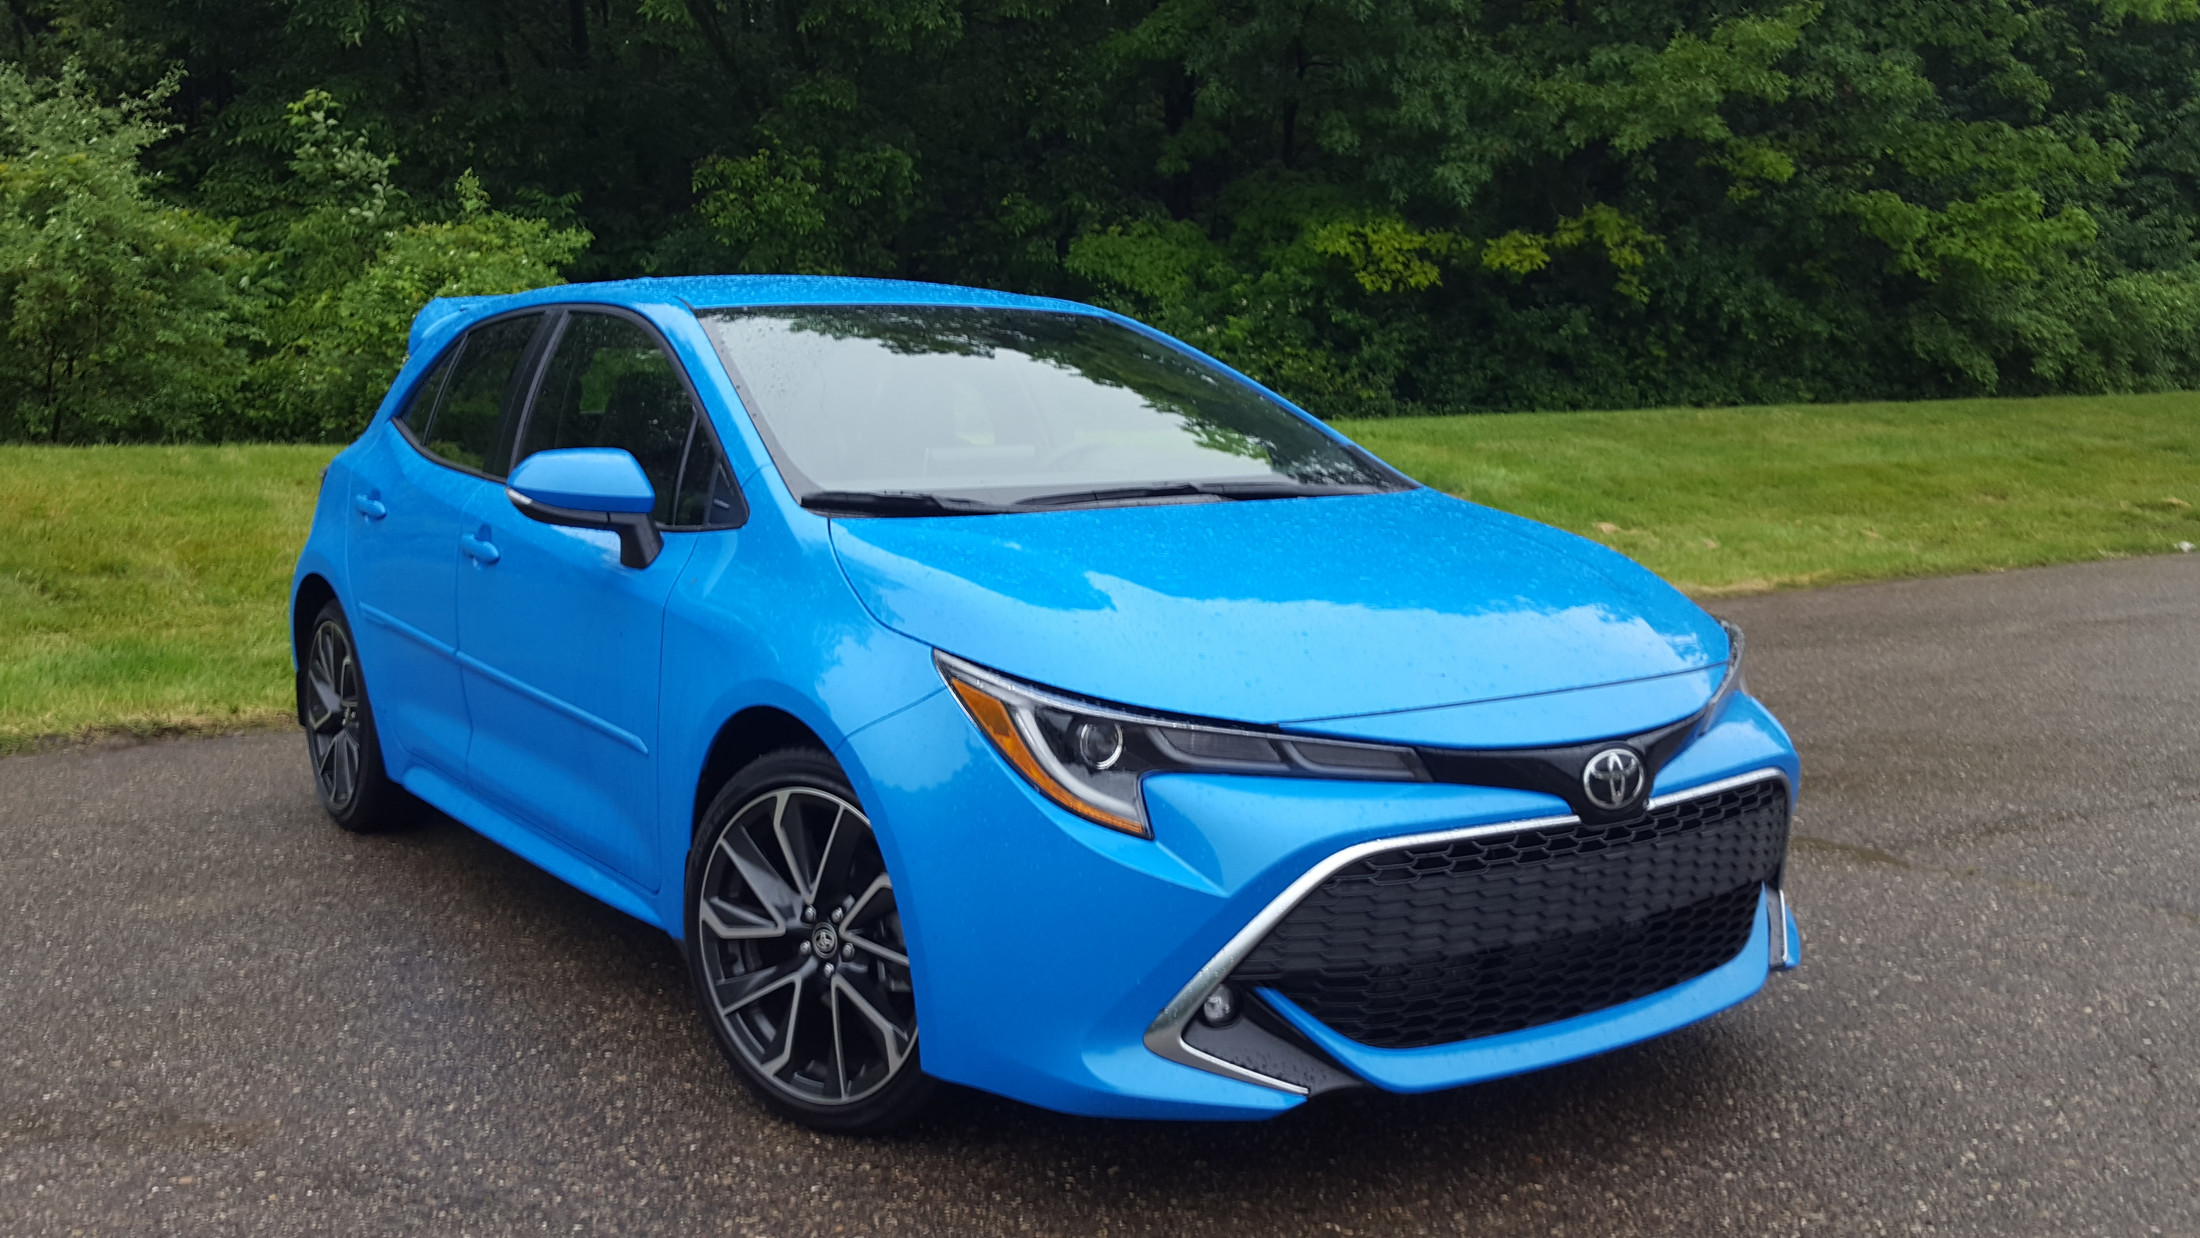 Road Test Review - 2019 Toyota Corolla Hatchback XSE 6-Speed Manual